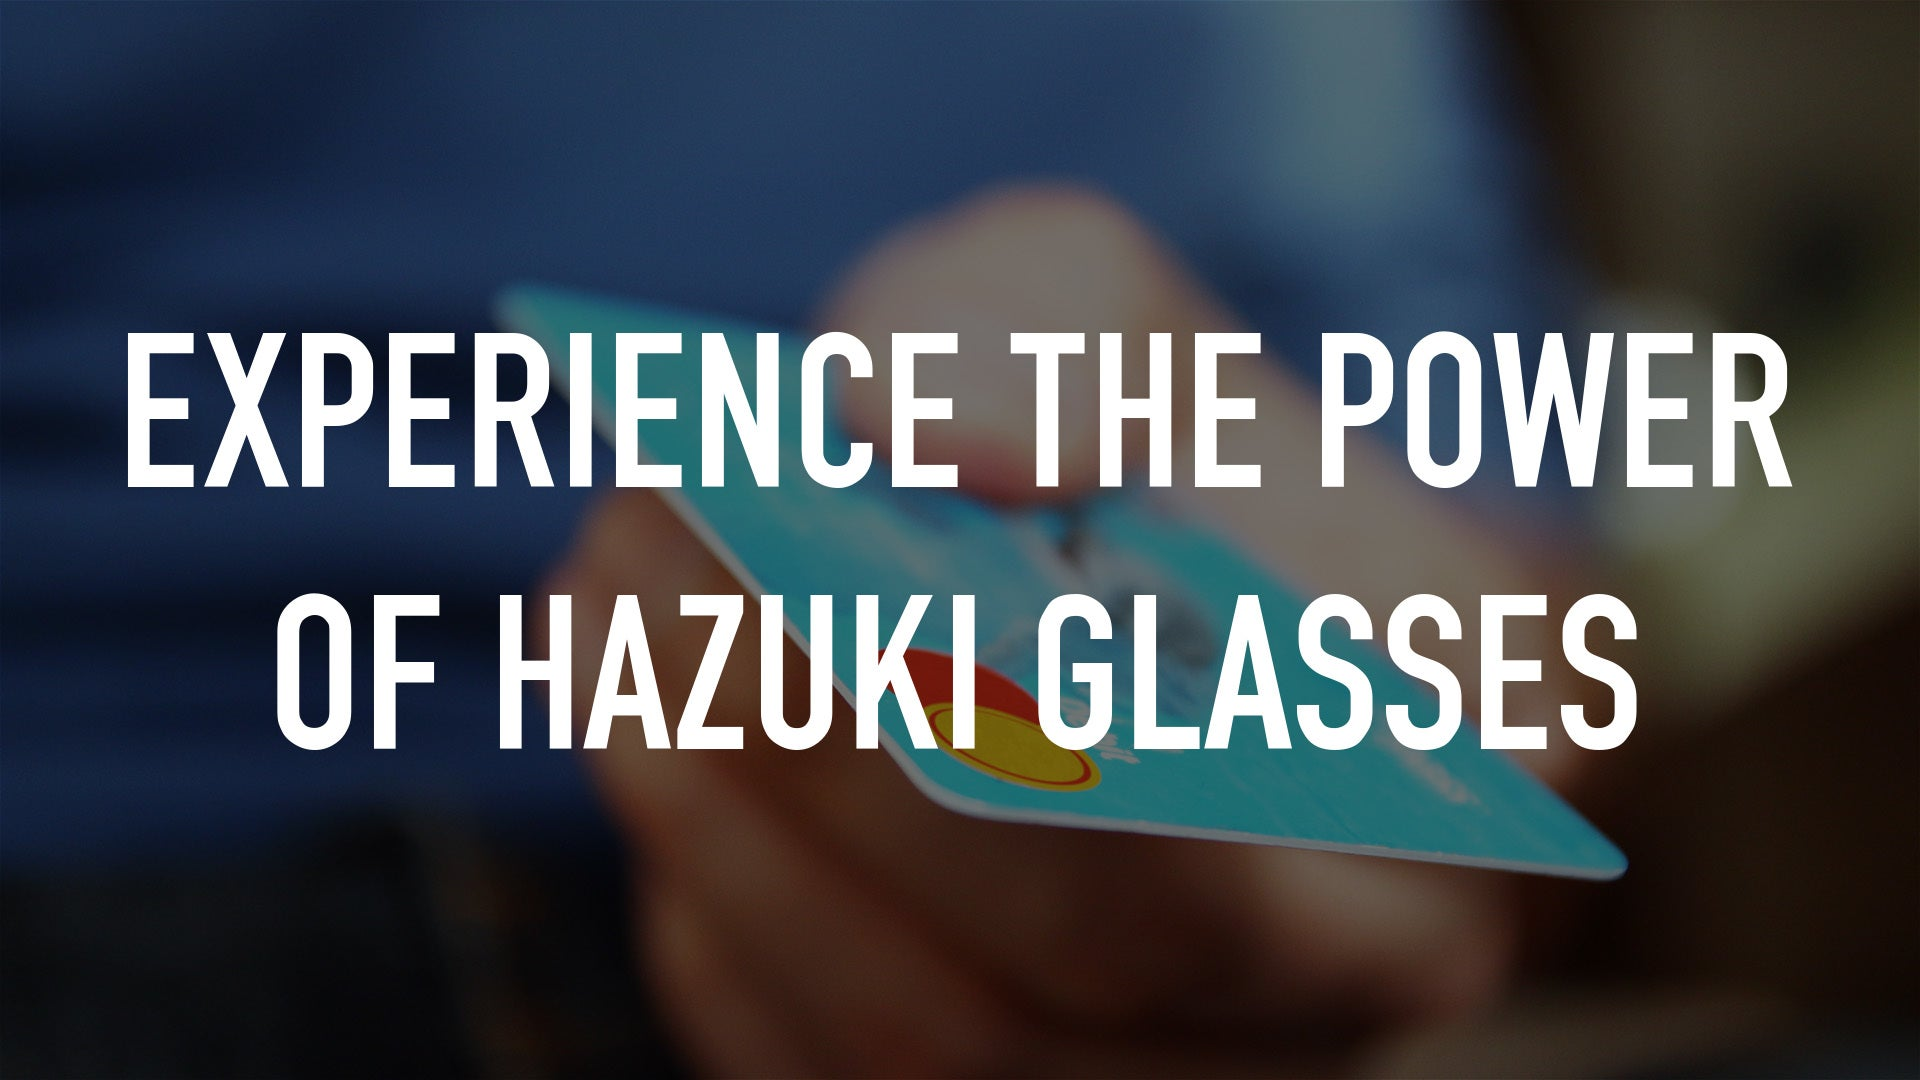 Experience the Power of Hazuki Glasses